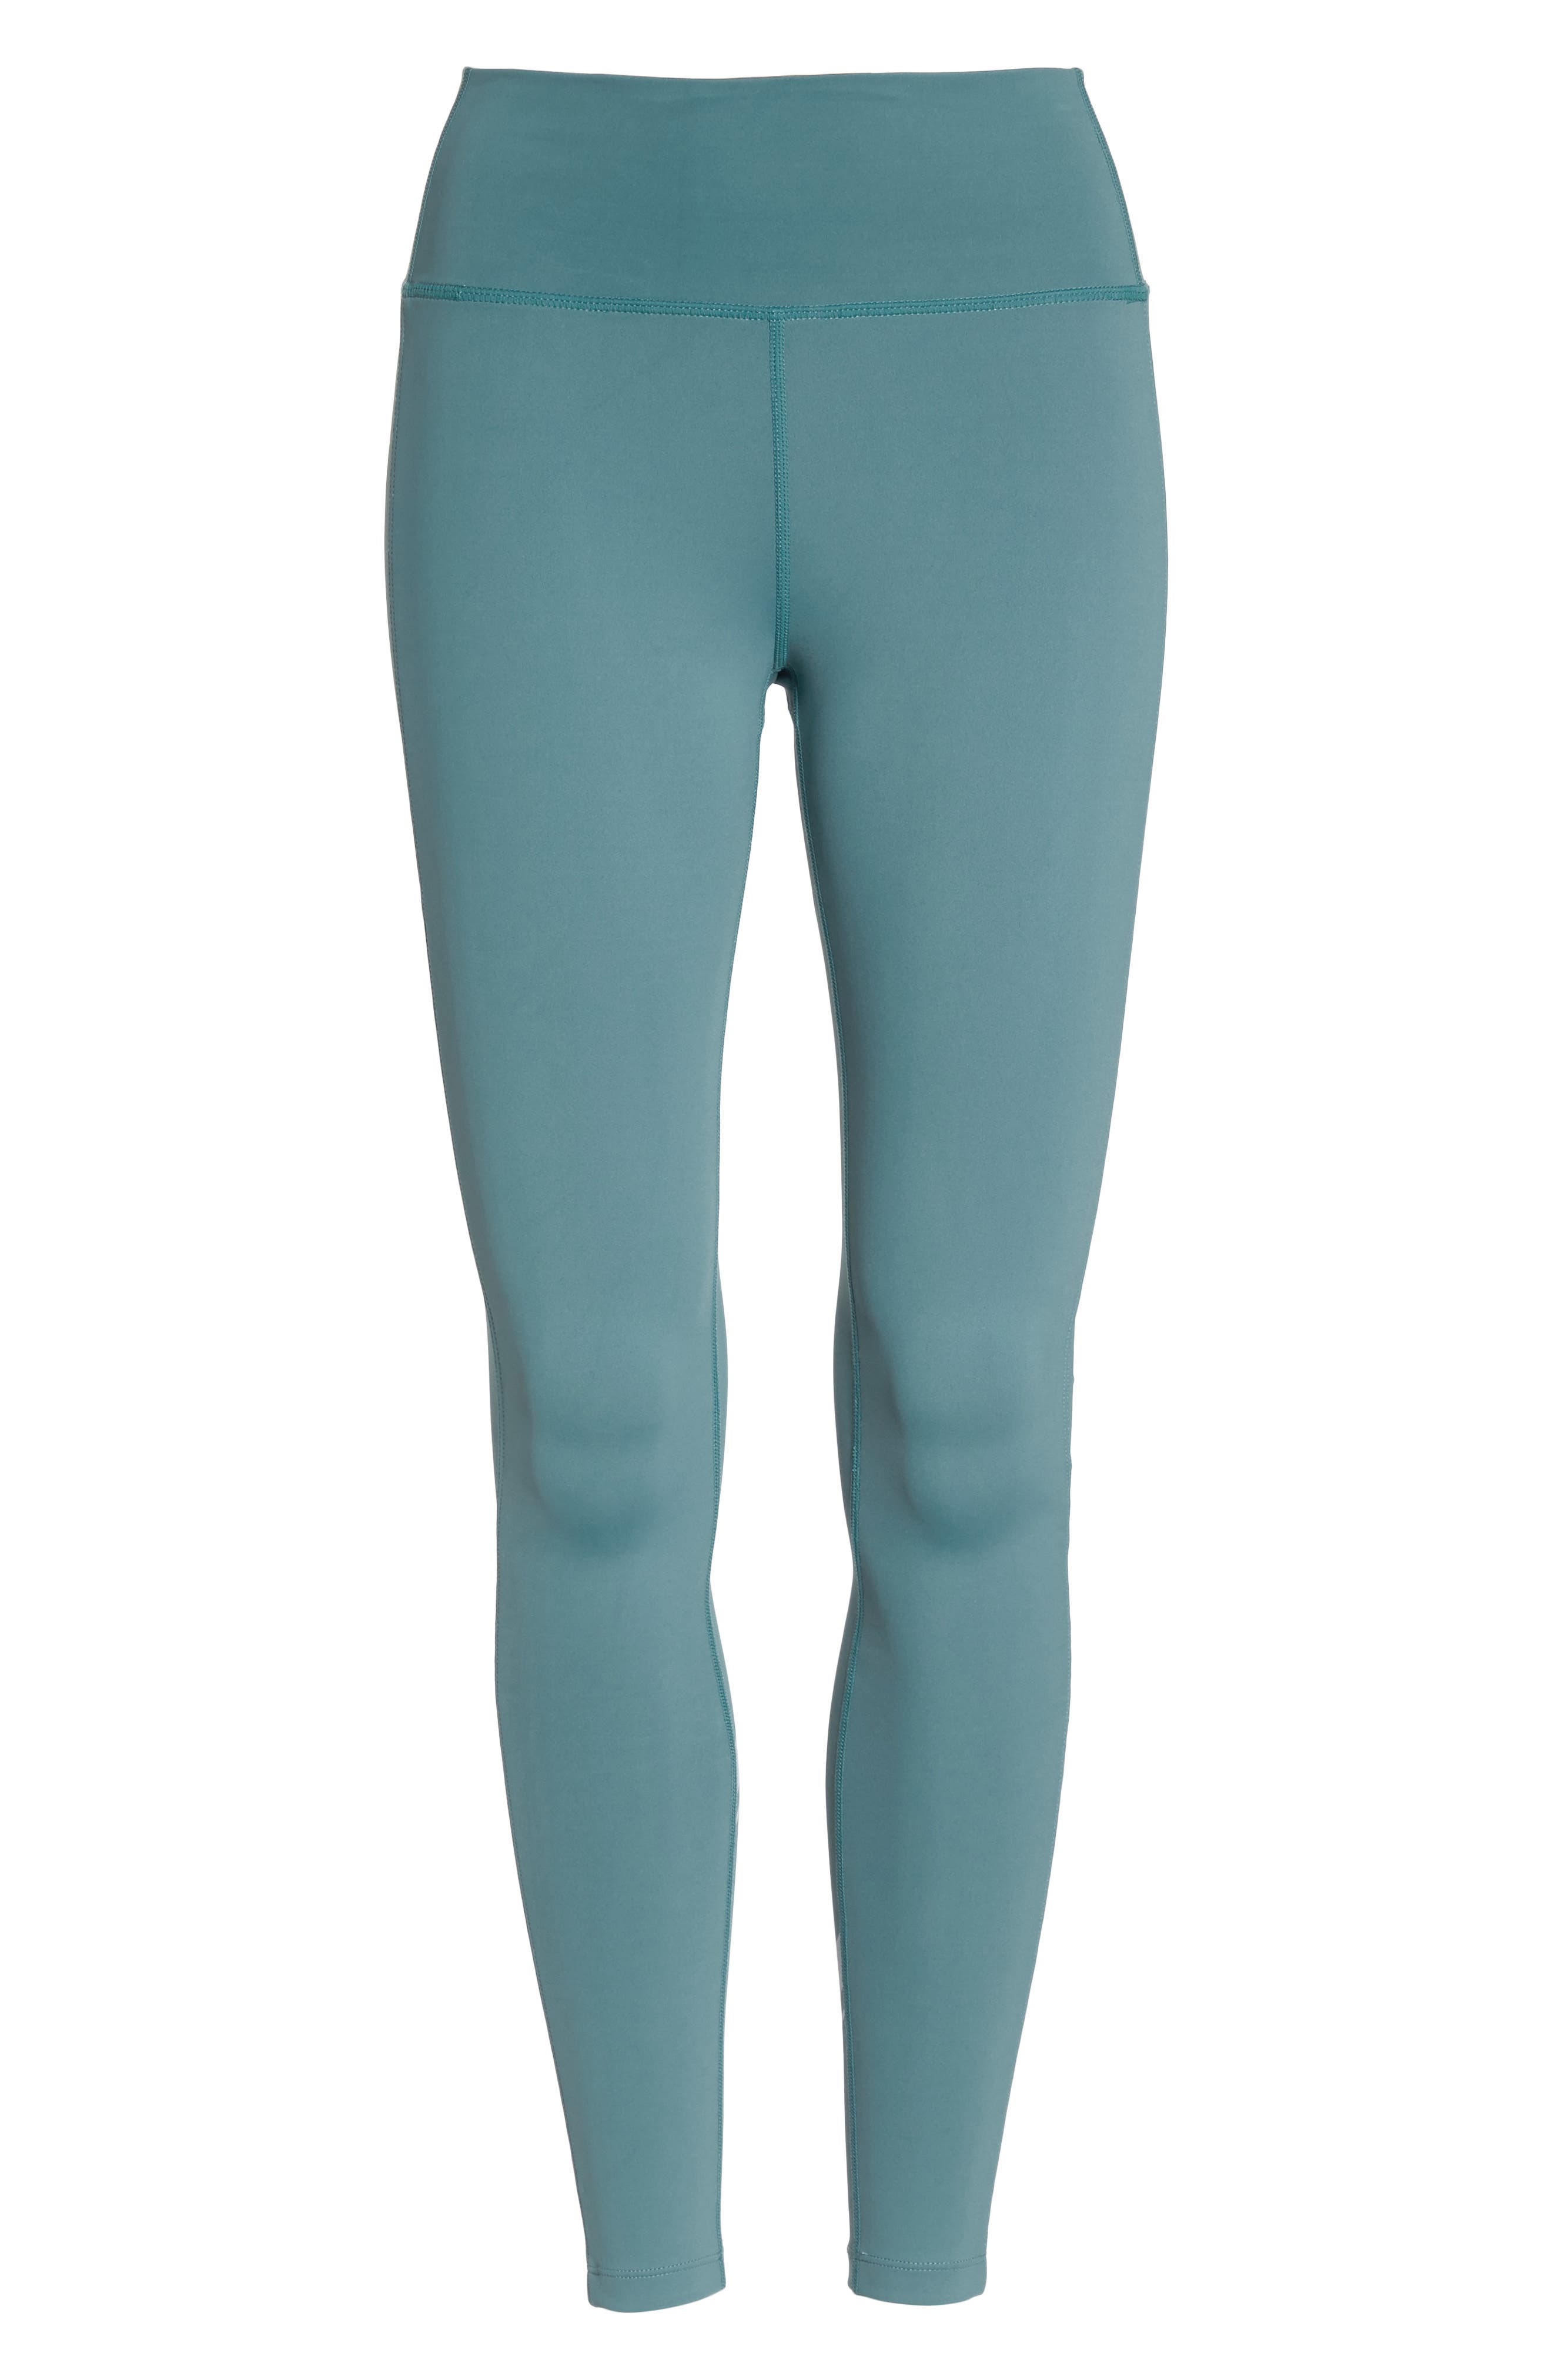 SPLITS59,                             Horizon Ankle Leggings,                             Alternate thumbnail 7, color,                             403